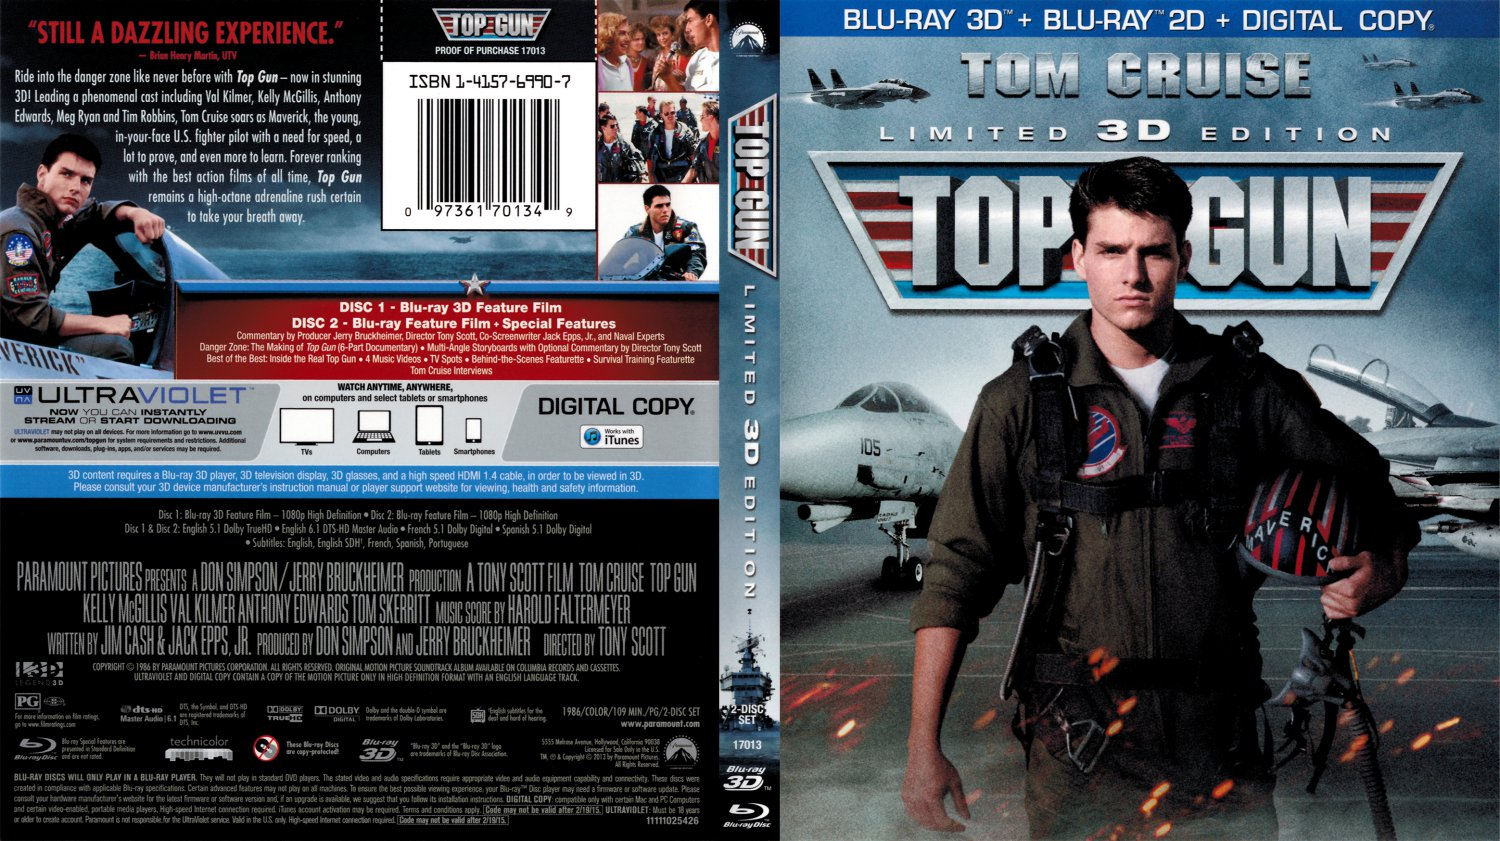 Top gun 3d top gun 3d bluray date 03 18 2013 size 1024x574 1500x841